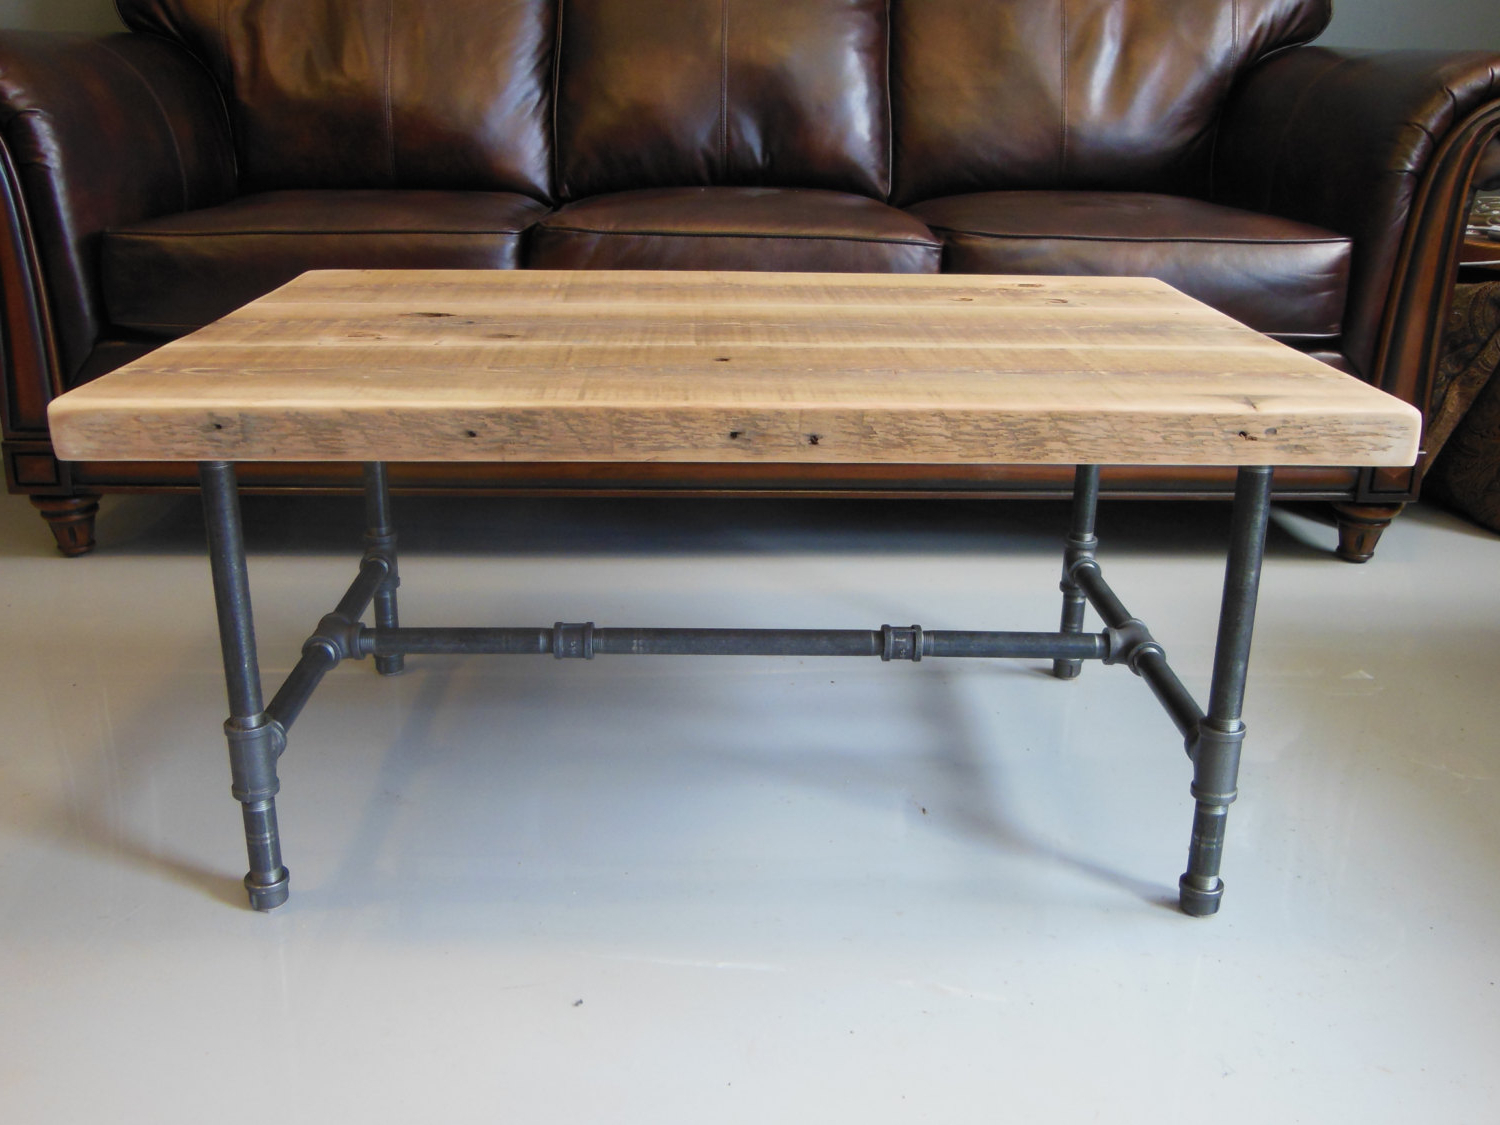 Latest Iron Wood Coffee Tables With Wheels Regarding Wood Coffee Table Legs Industrial – Thelightlaughed (View 15 of 20)